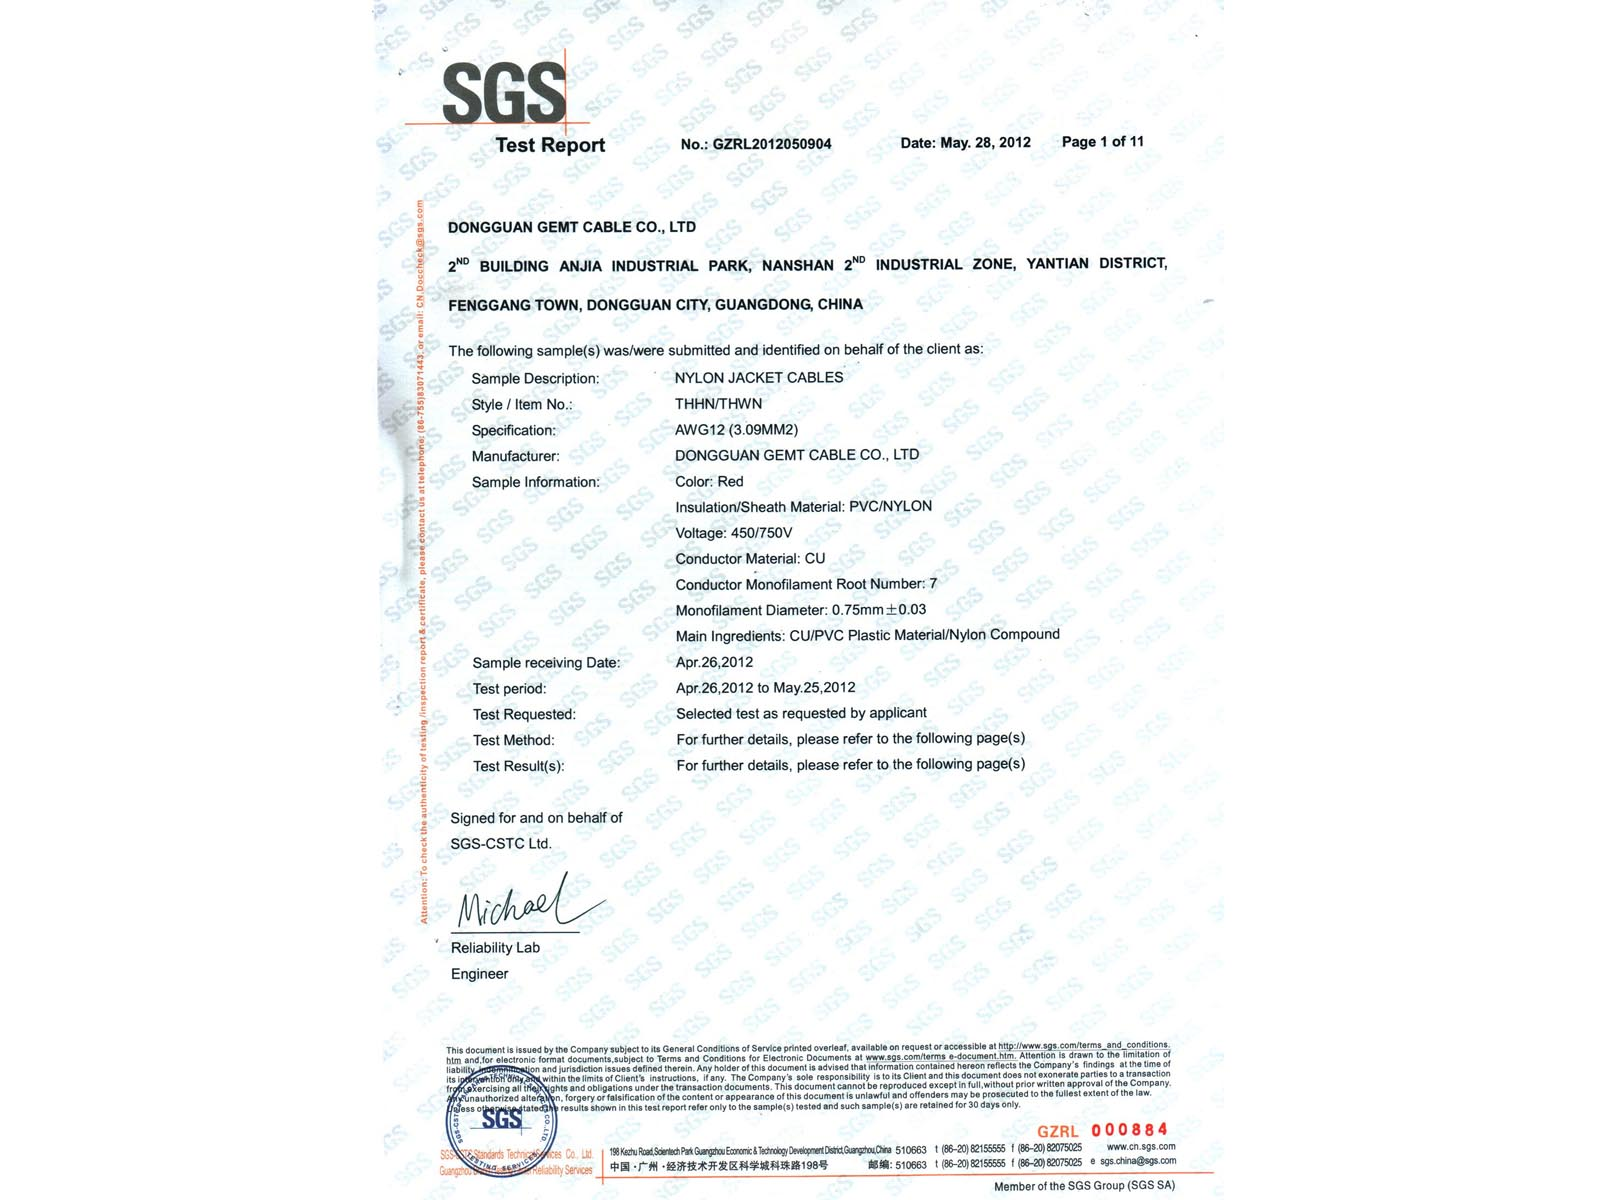 SGS Testing of Nylon Cables